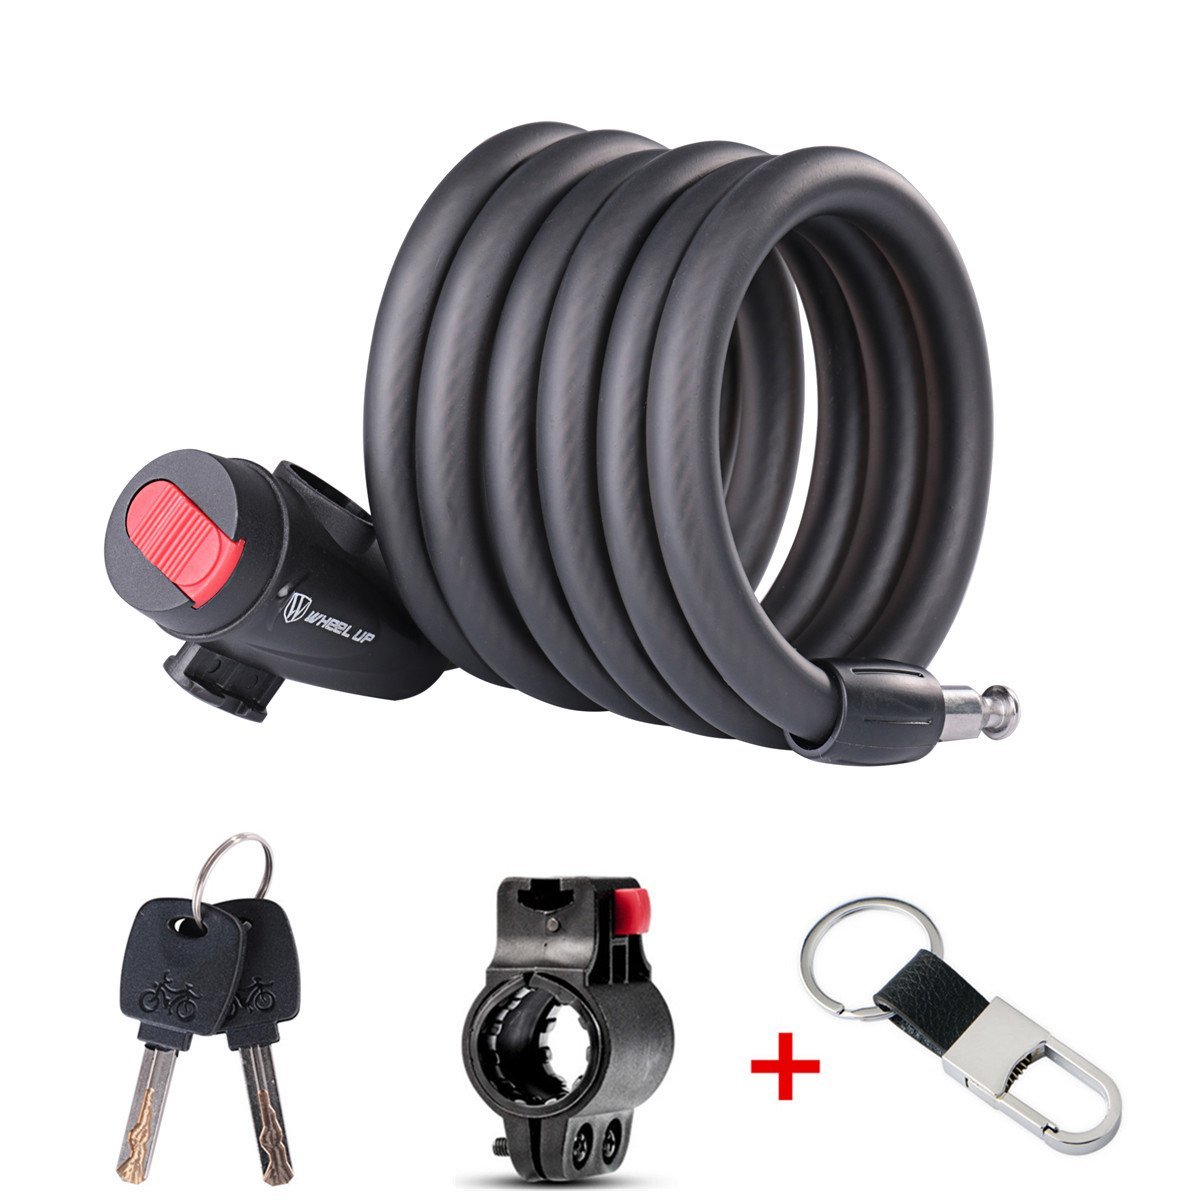 ZHIXIE Bike Lock Key Lock Chain Combination Cable Lock For Bicycle Outdoor, Bike, Scooter, Grill & Other Items to Save